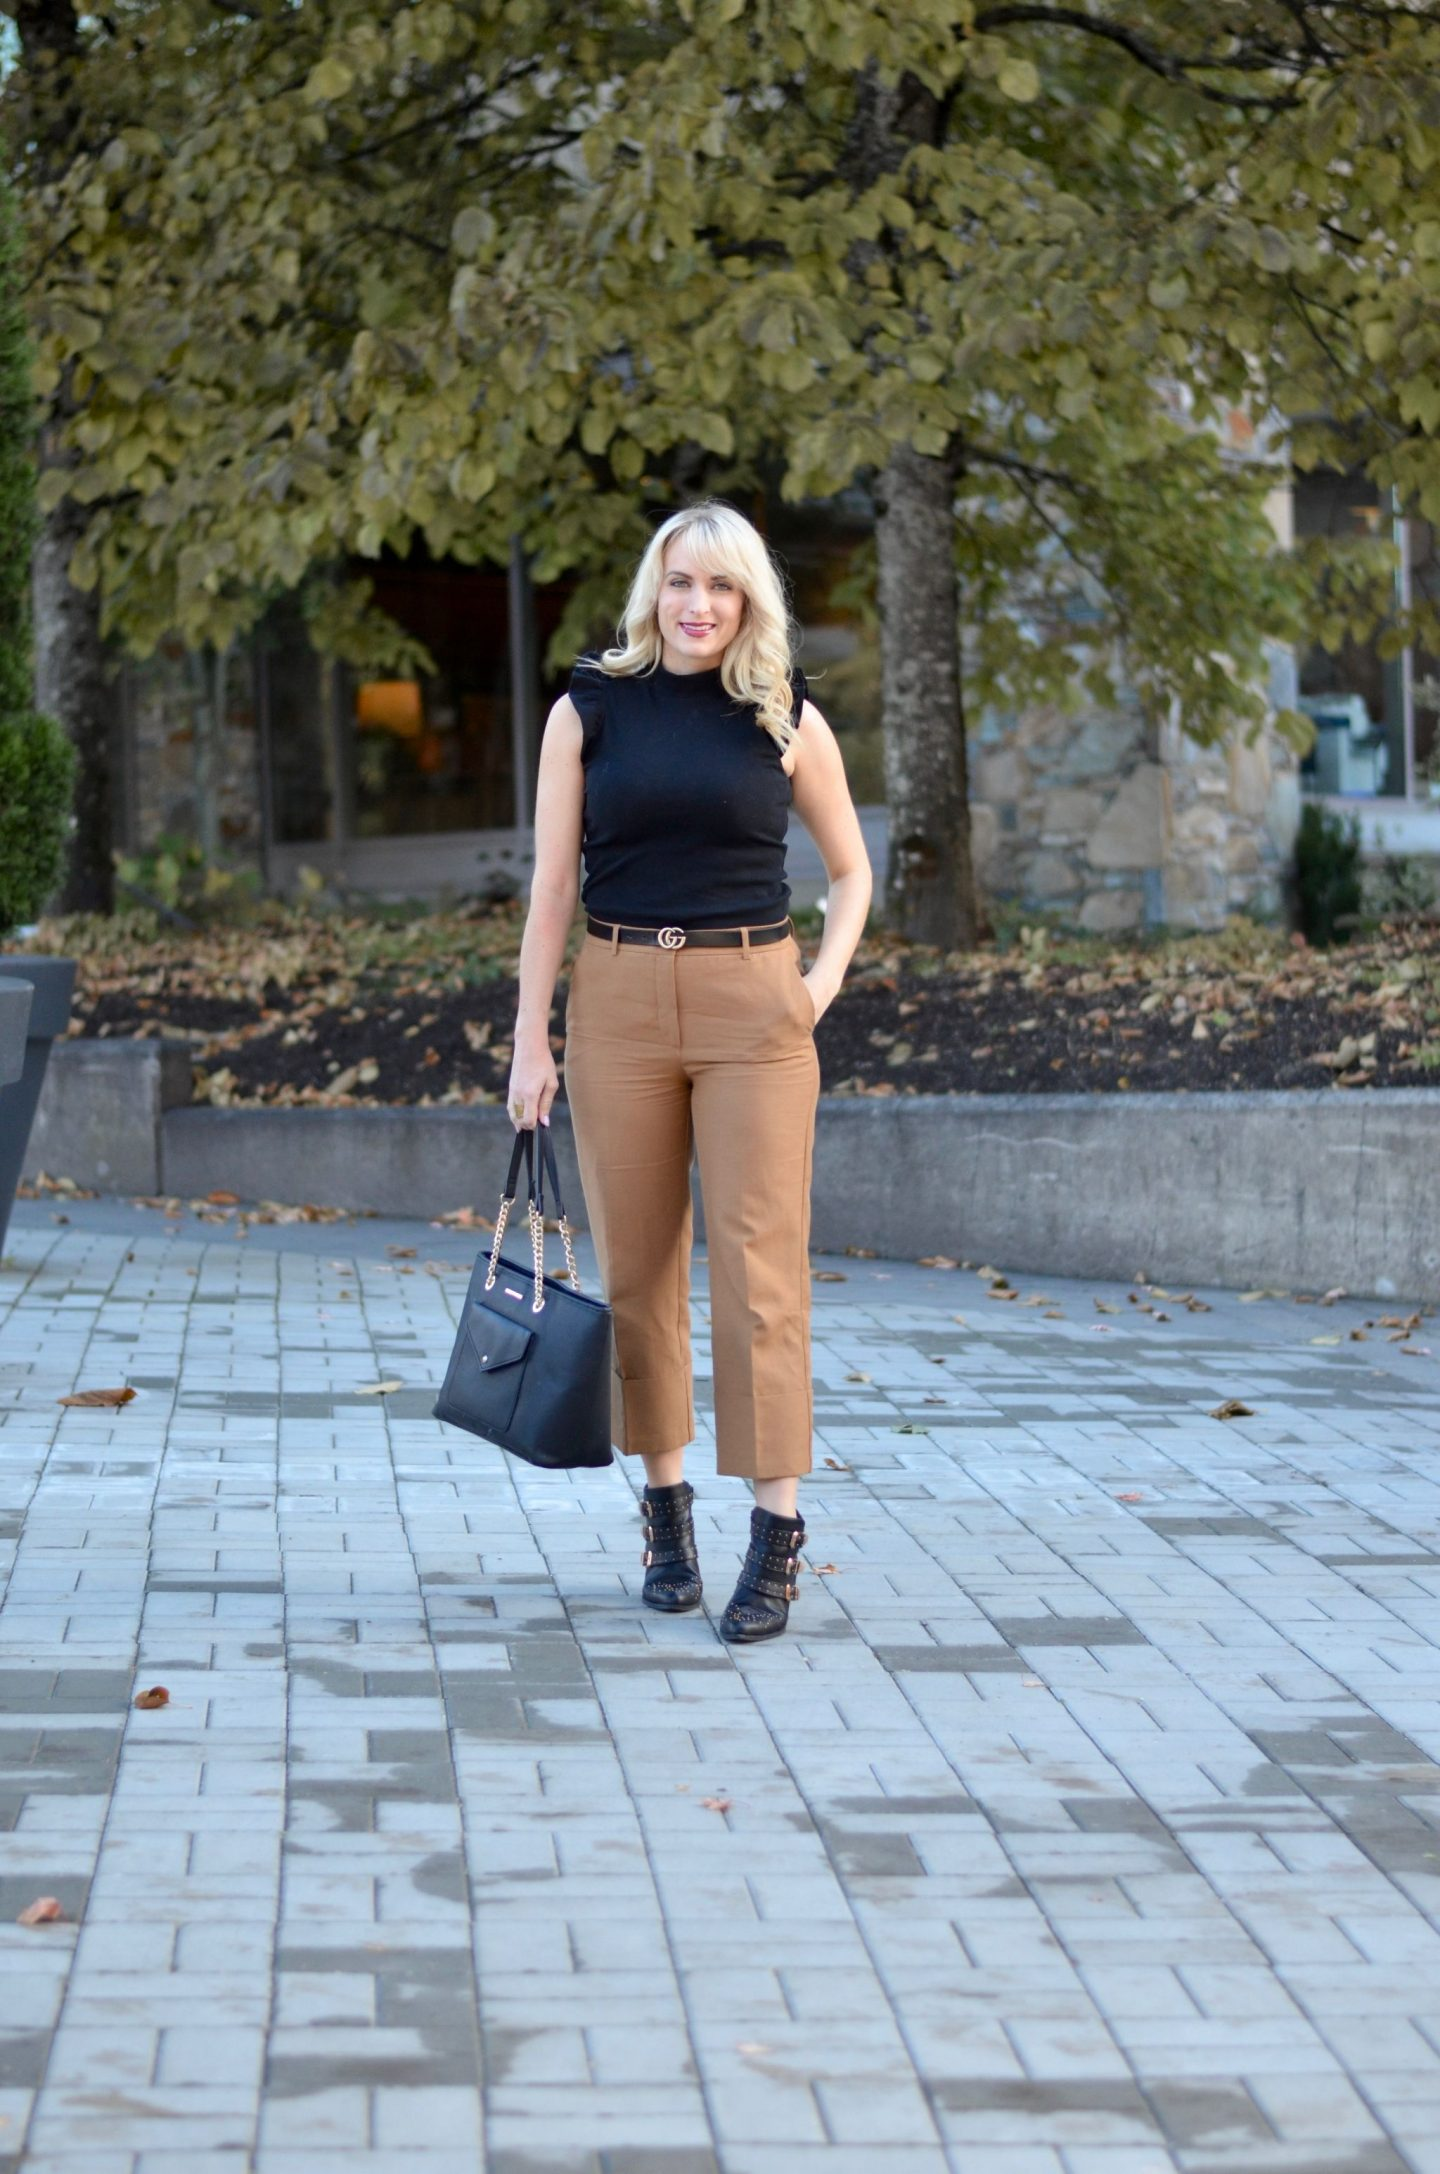 legallee blonde casual friday outfit camel culottes